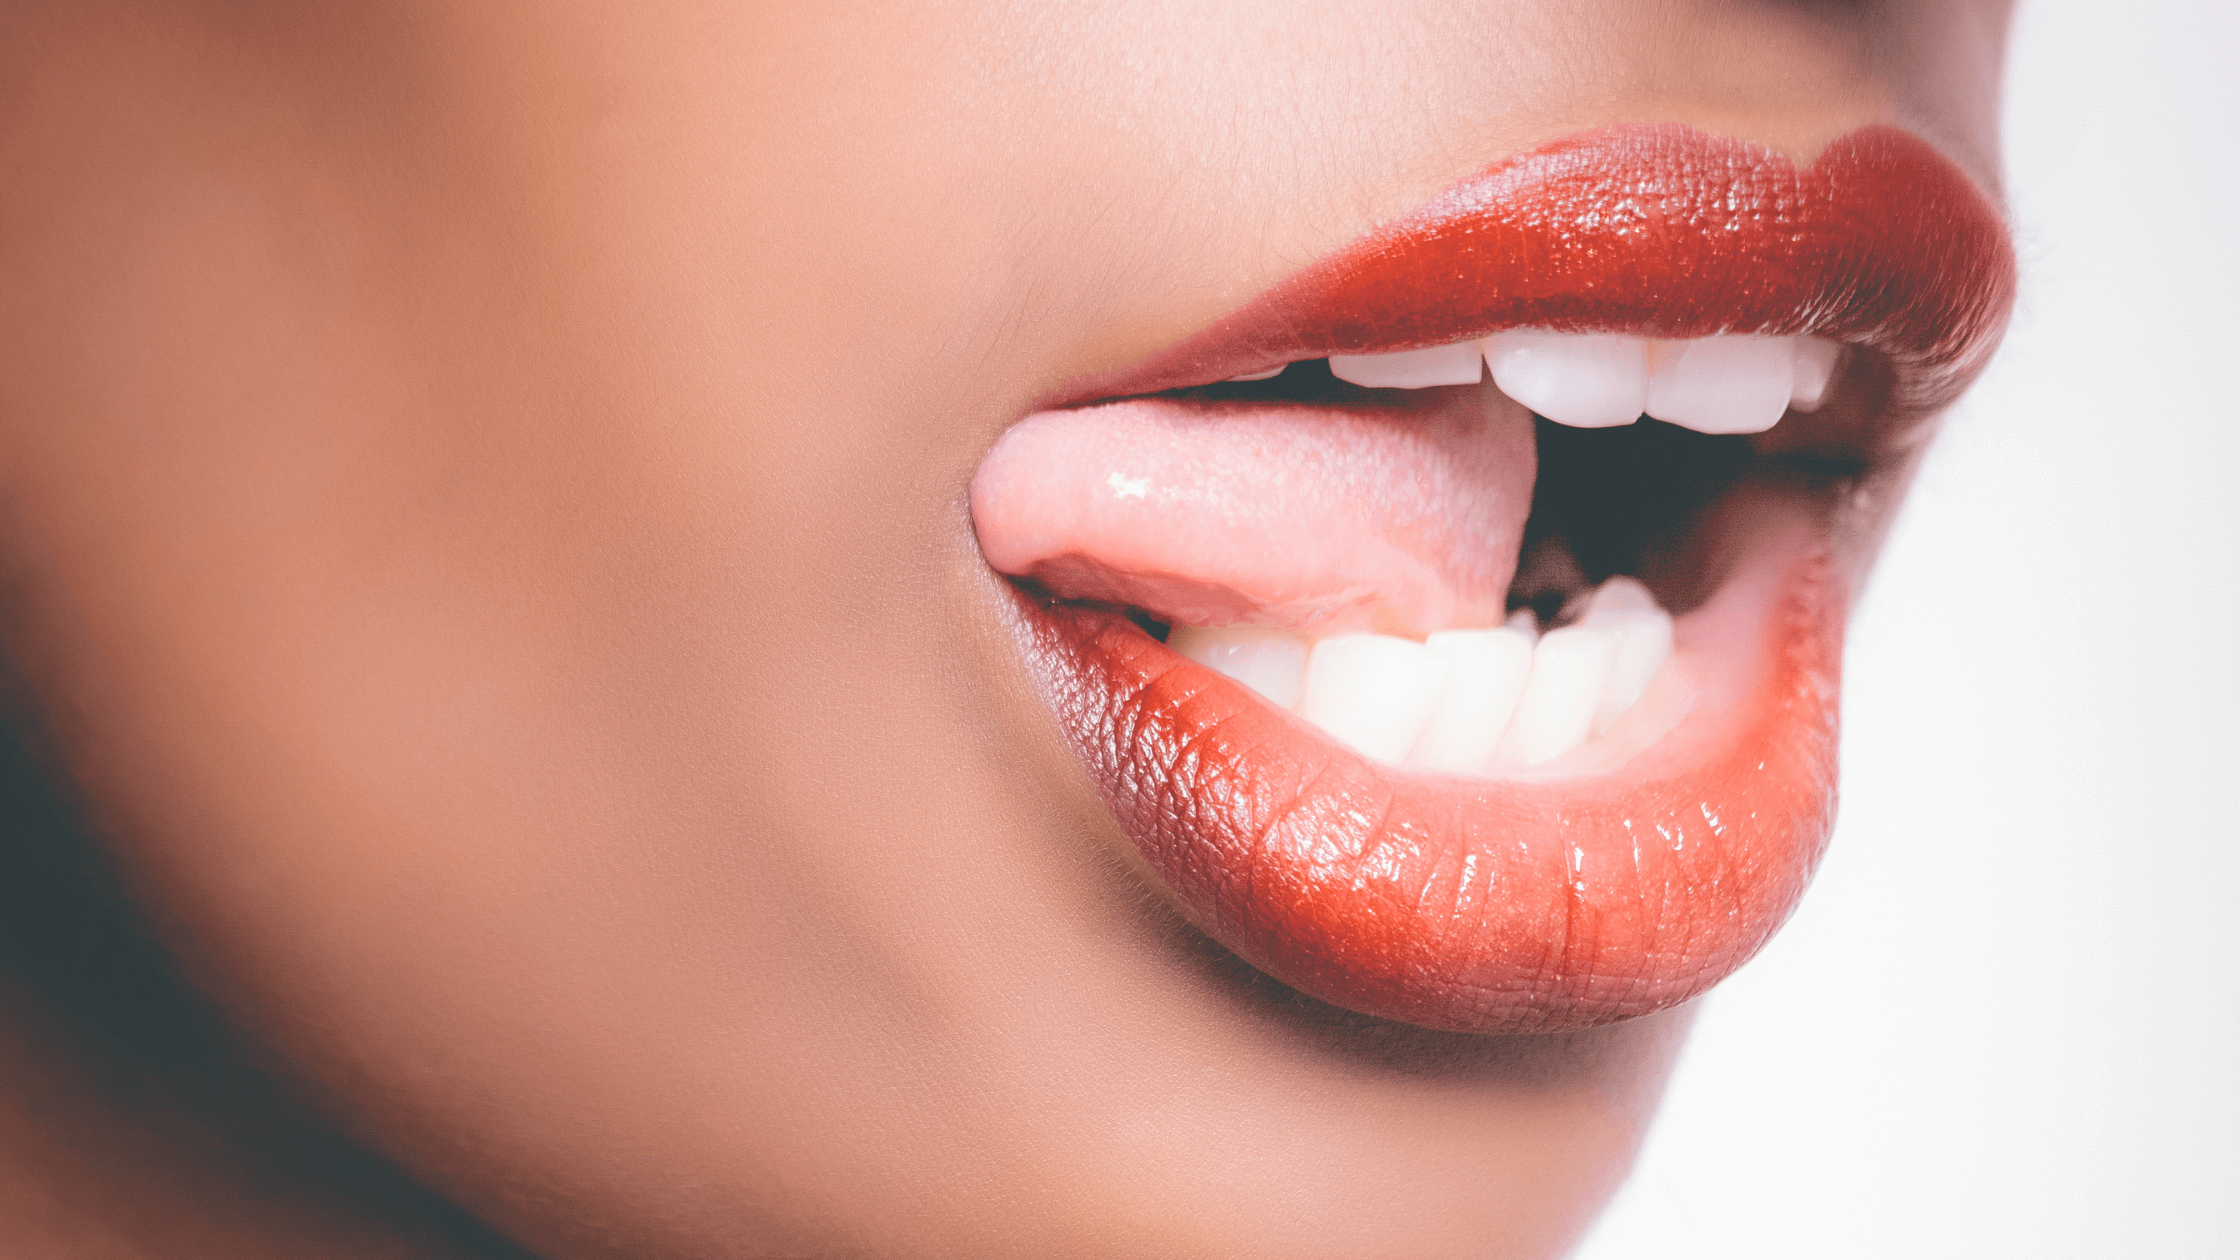 Can you really swallow your tongue?